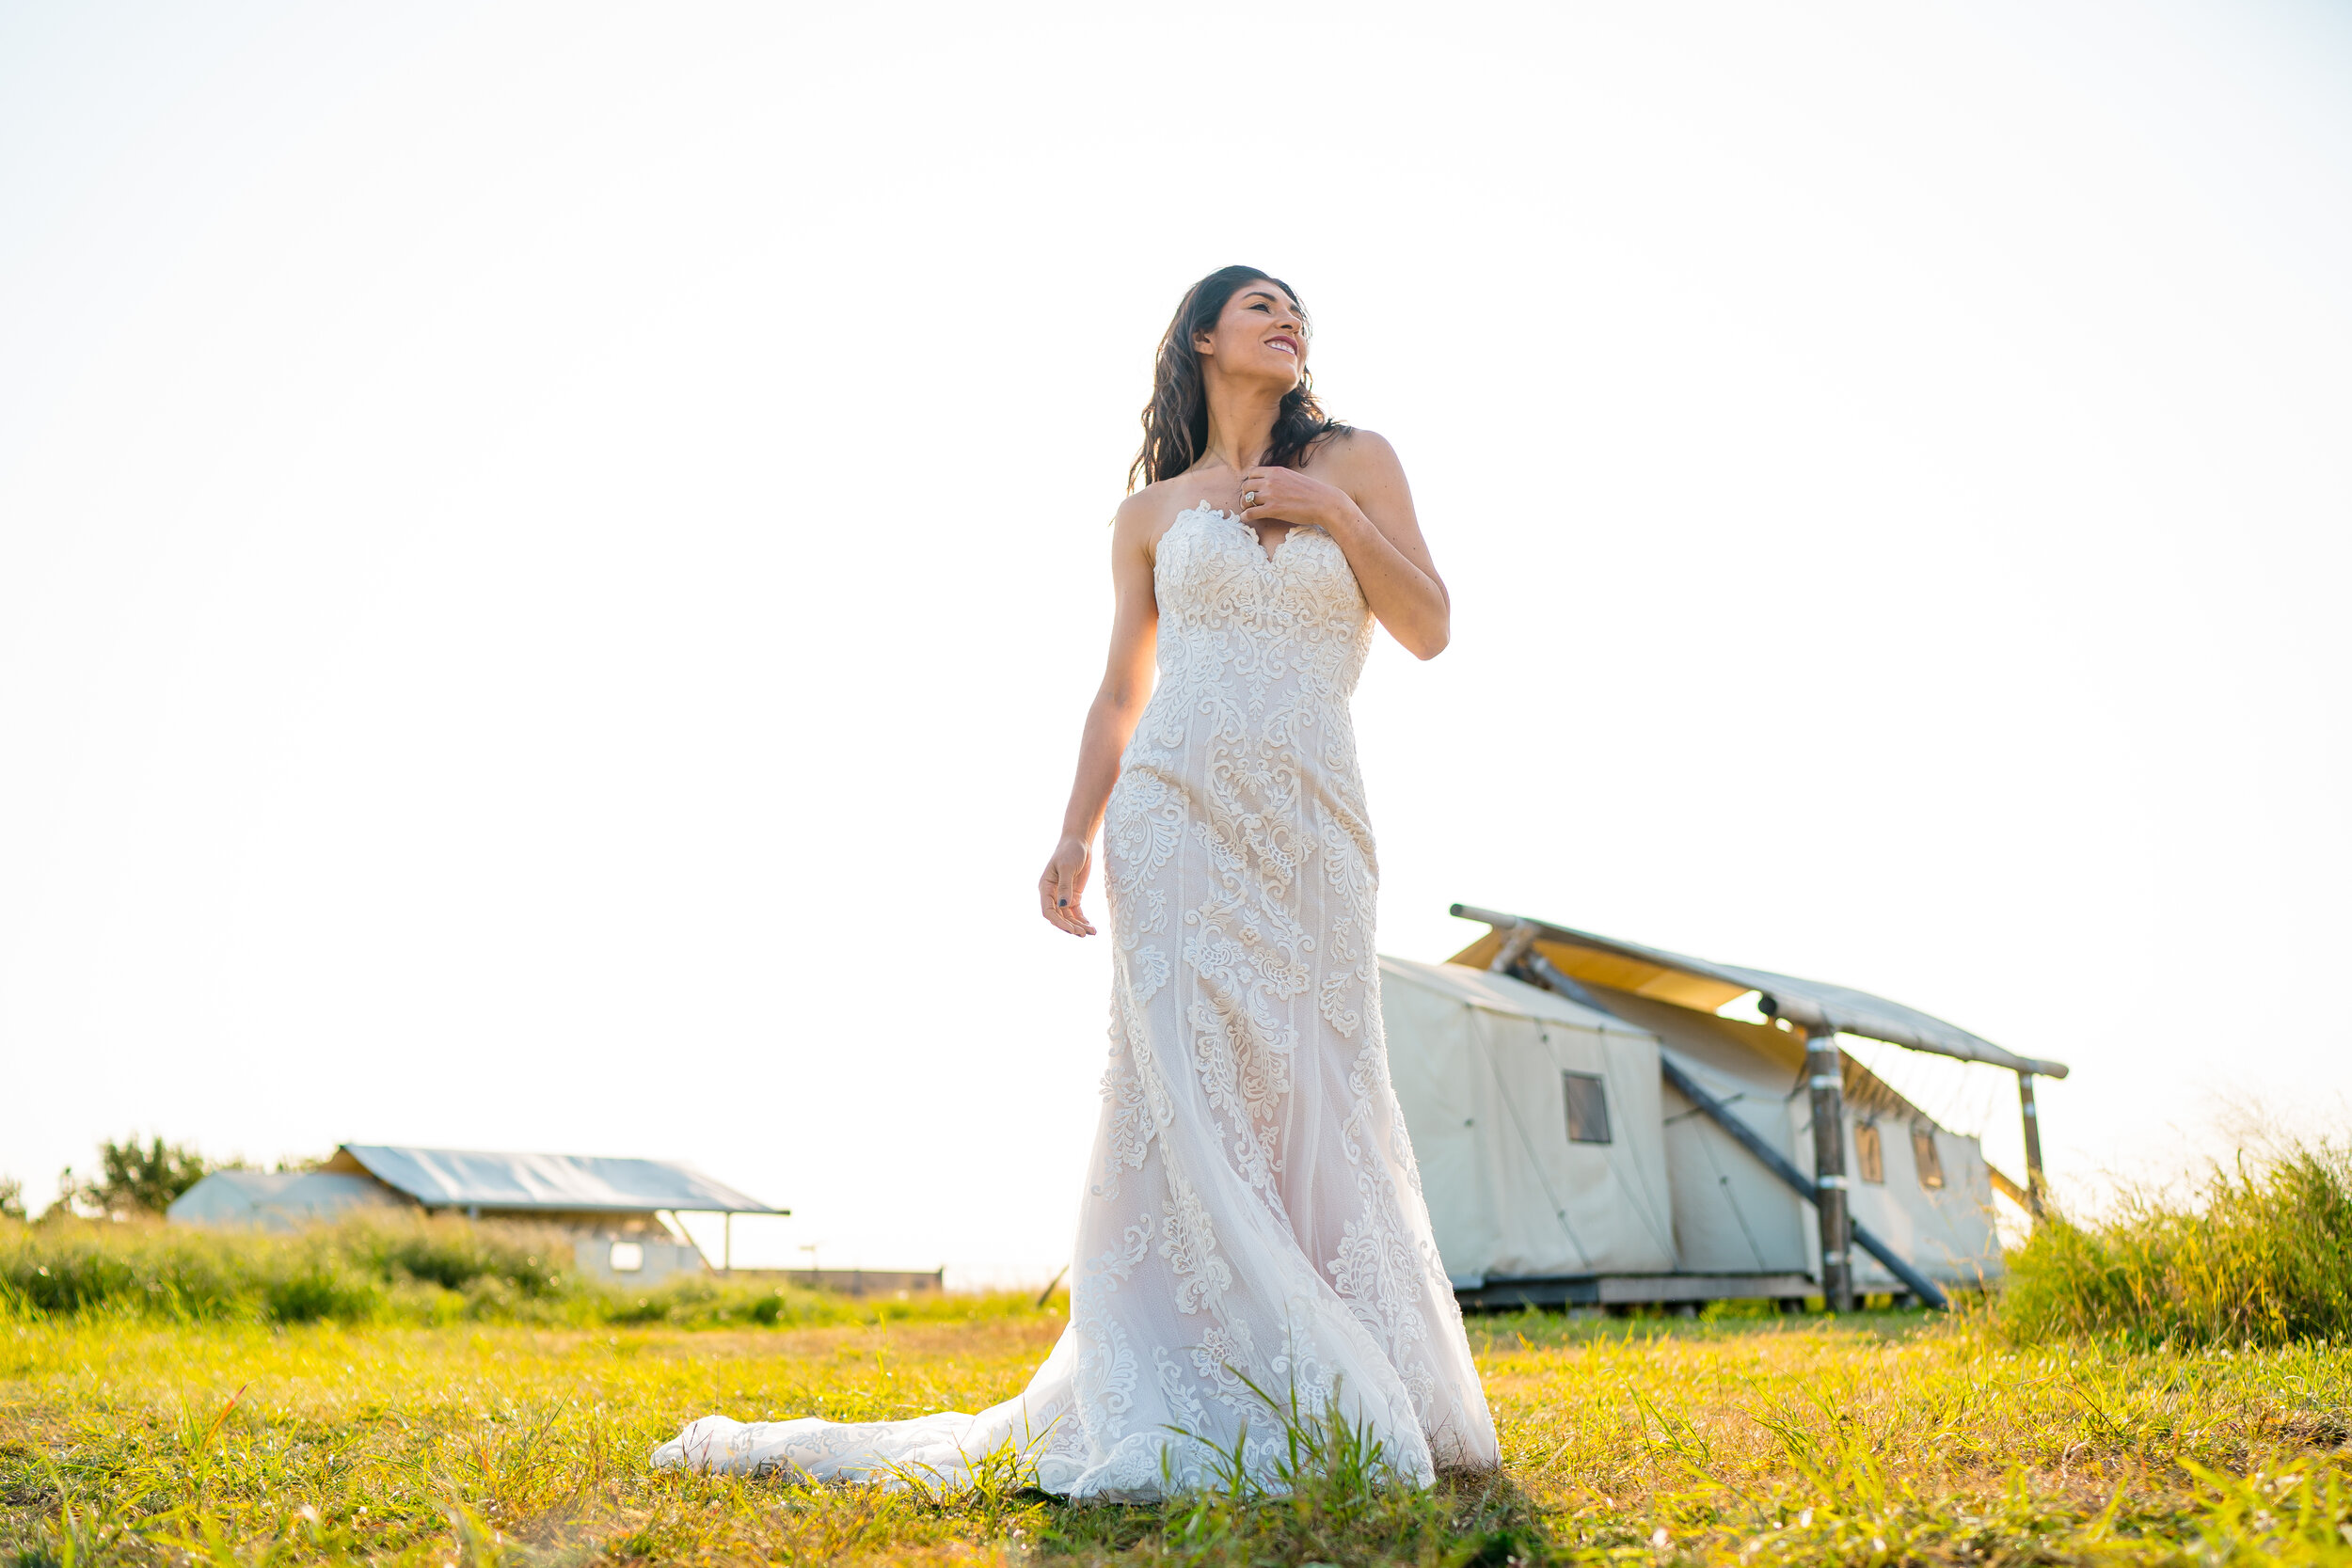 Influencer Wearing Strapless Lace Wedding Dress Called Erin Marie by Maggie Sottero